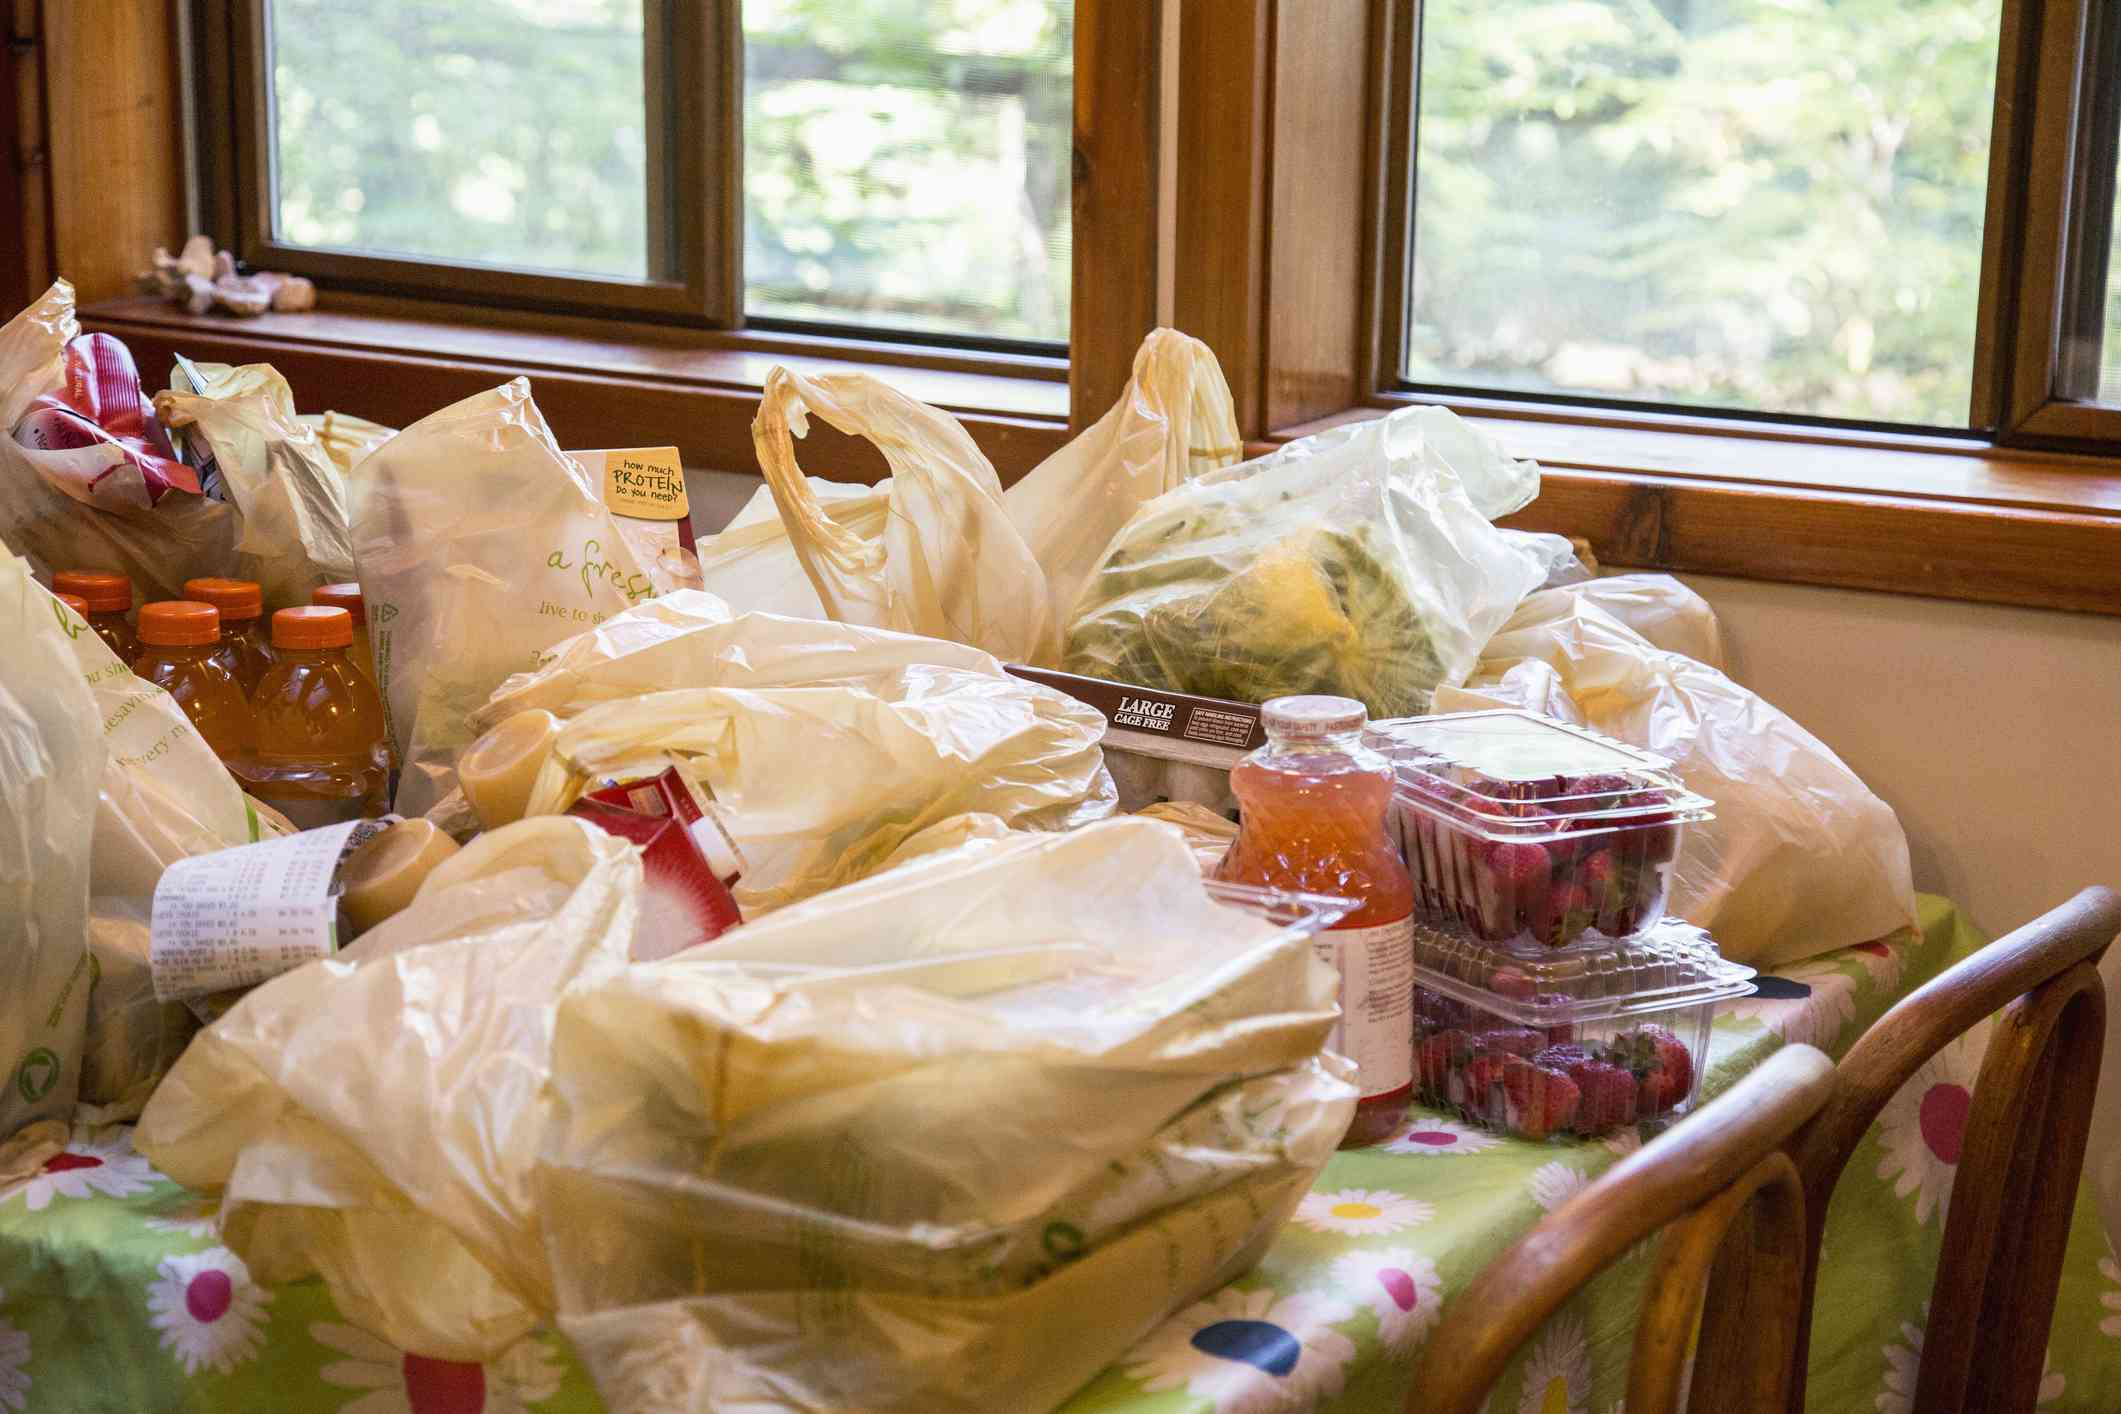 Bags of plastic holding groceries on a table.